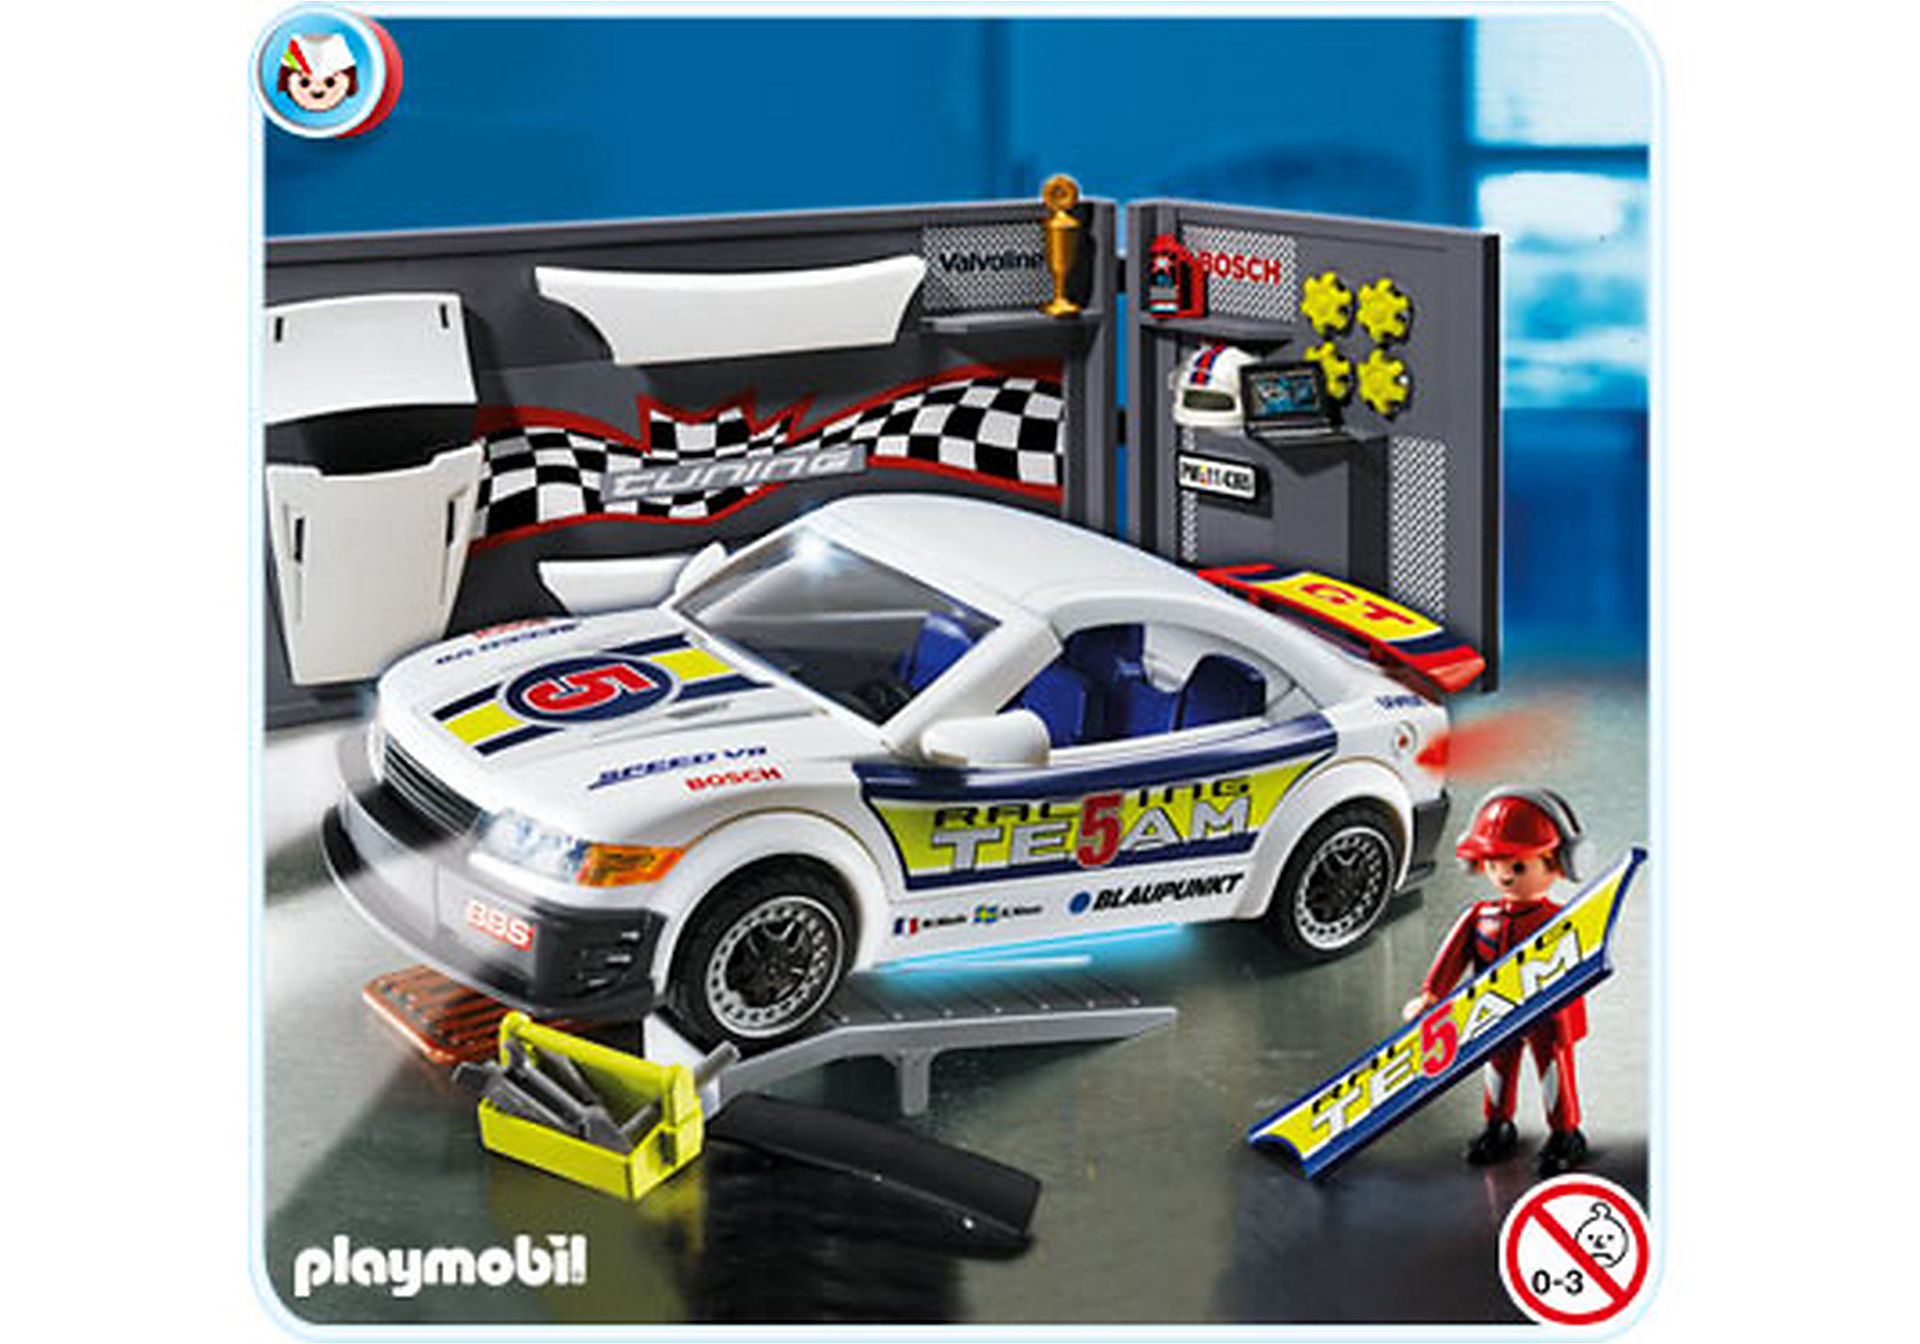 http://media.playmobil.com/i/playmobil/4365-A_product_detail/Tuning-Rennwagen mit Licht